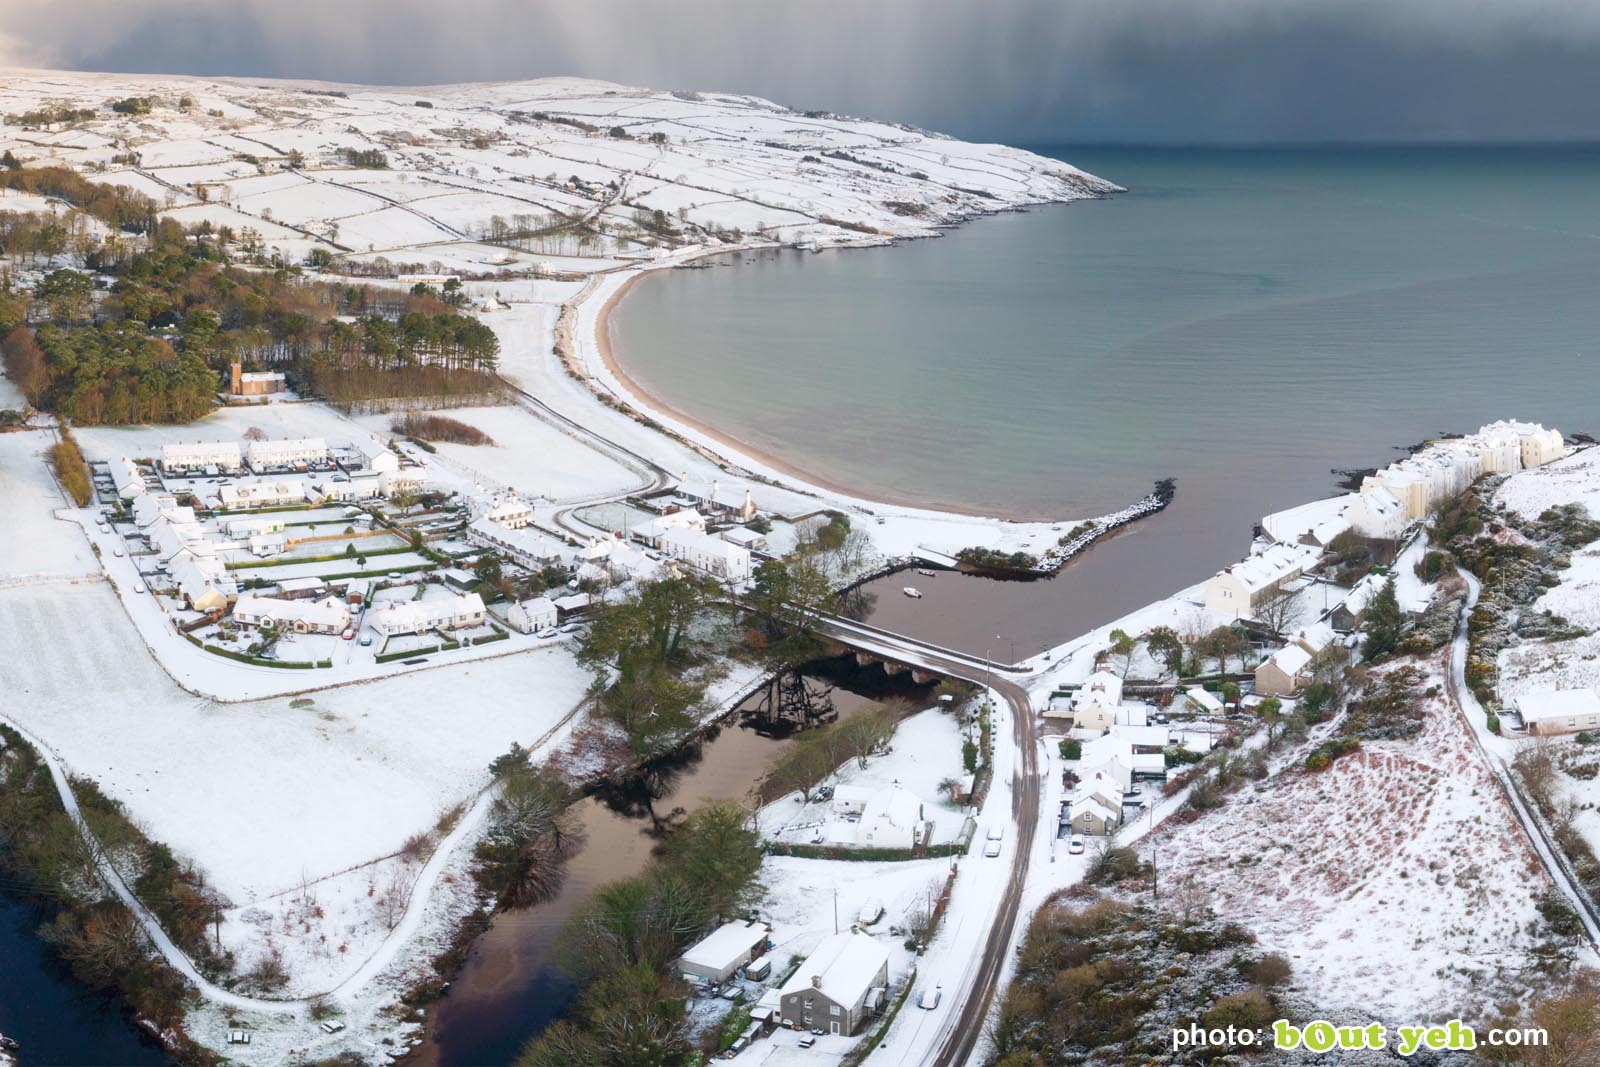 Aerial video of Cushendun under snow in winter by Bout Yeh photography and video production Belfast and Northern Ireland - video screenshot 6